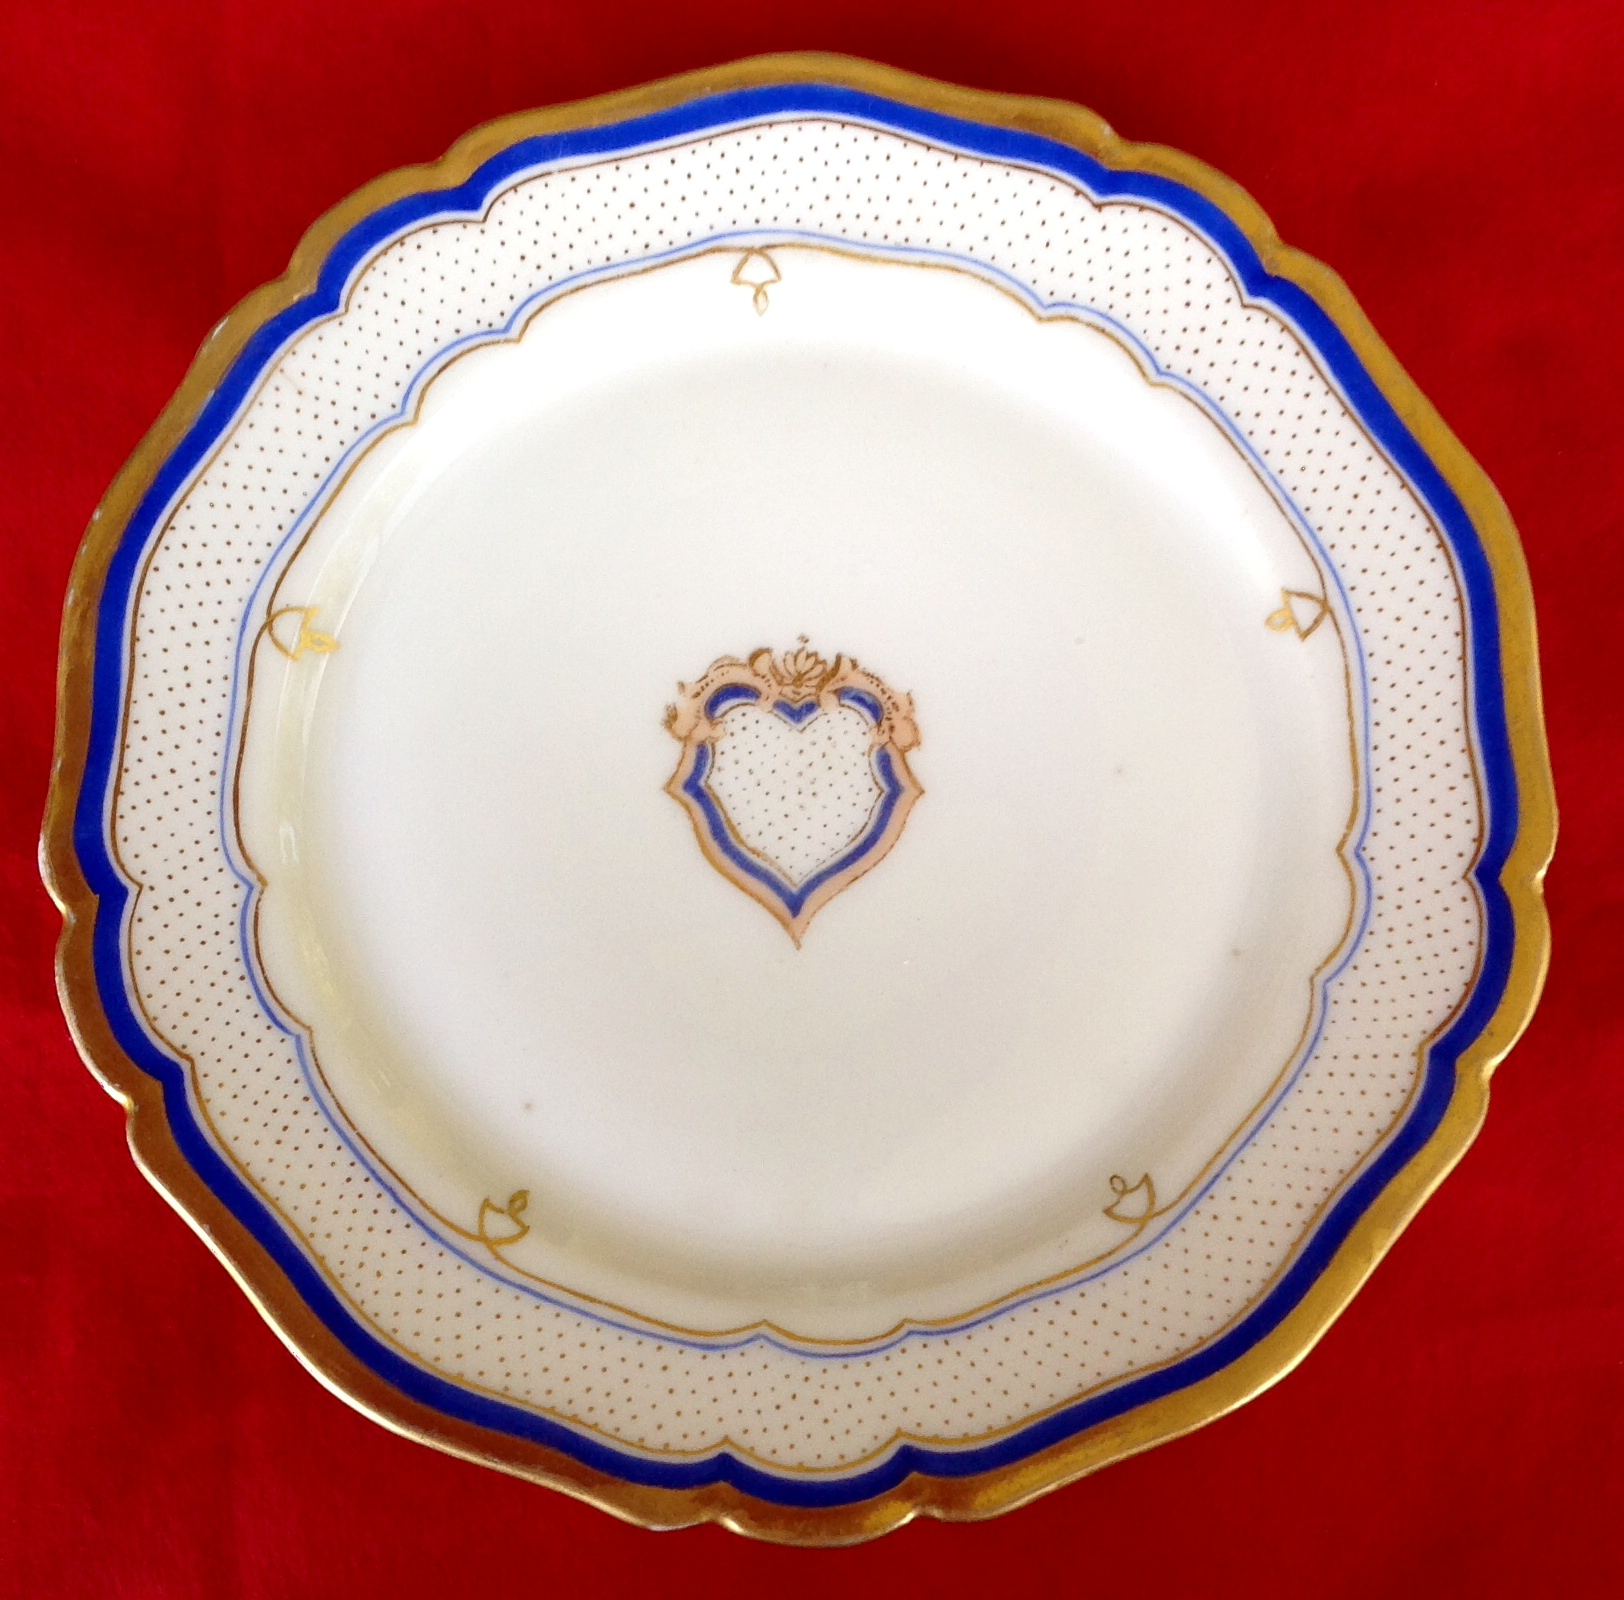 franklin pierce white house china